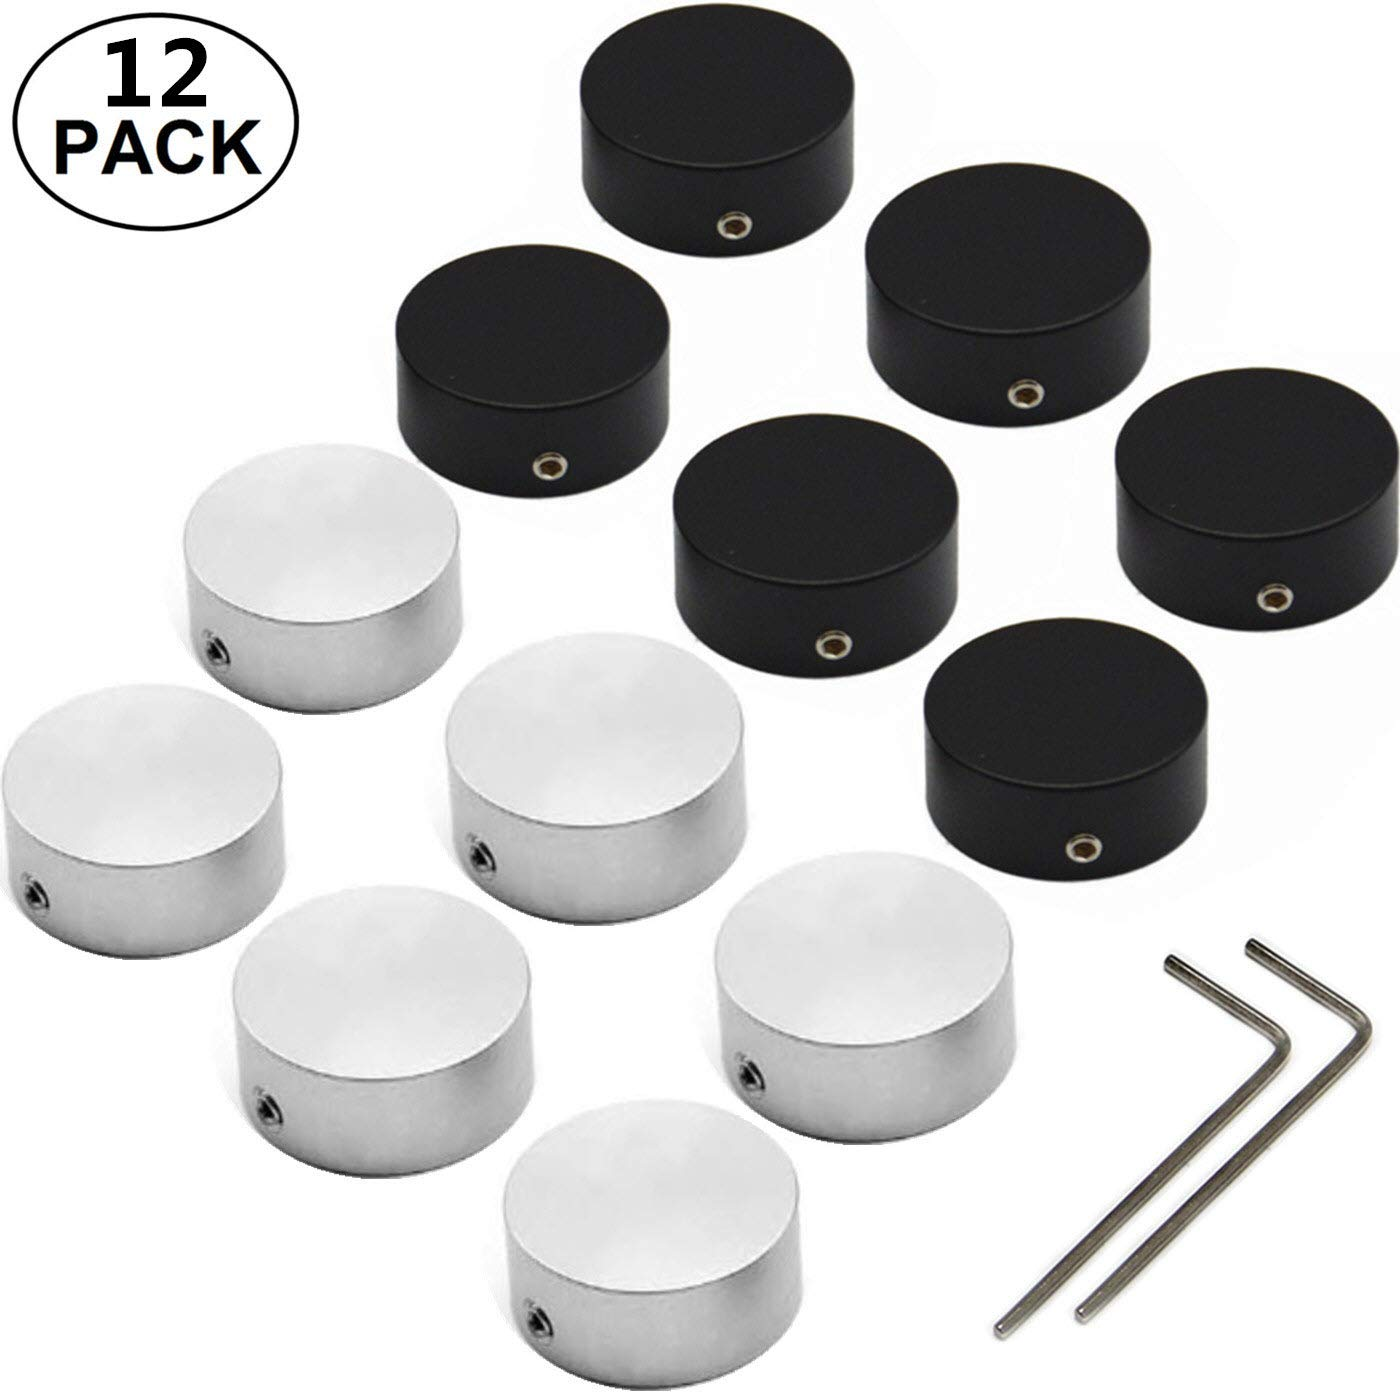 Effects Pedal Footswitch Topper kit with Rubber Inserts Locking Tight on bumper switches Increase accuracy comfort 12Pcs Silver+Black SOLUTEK